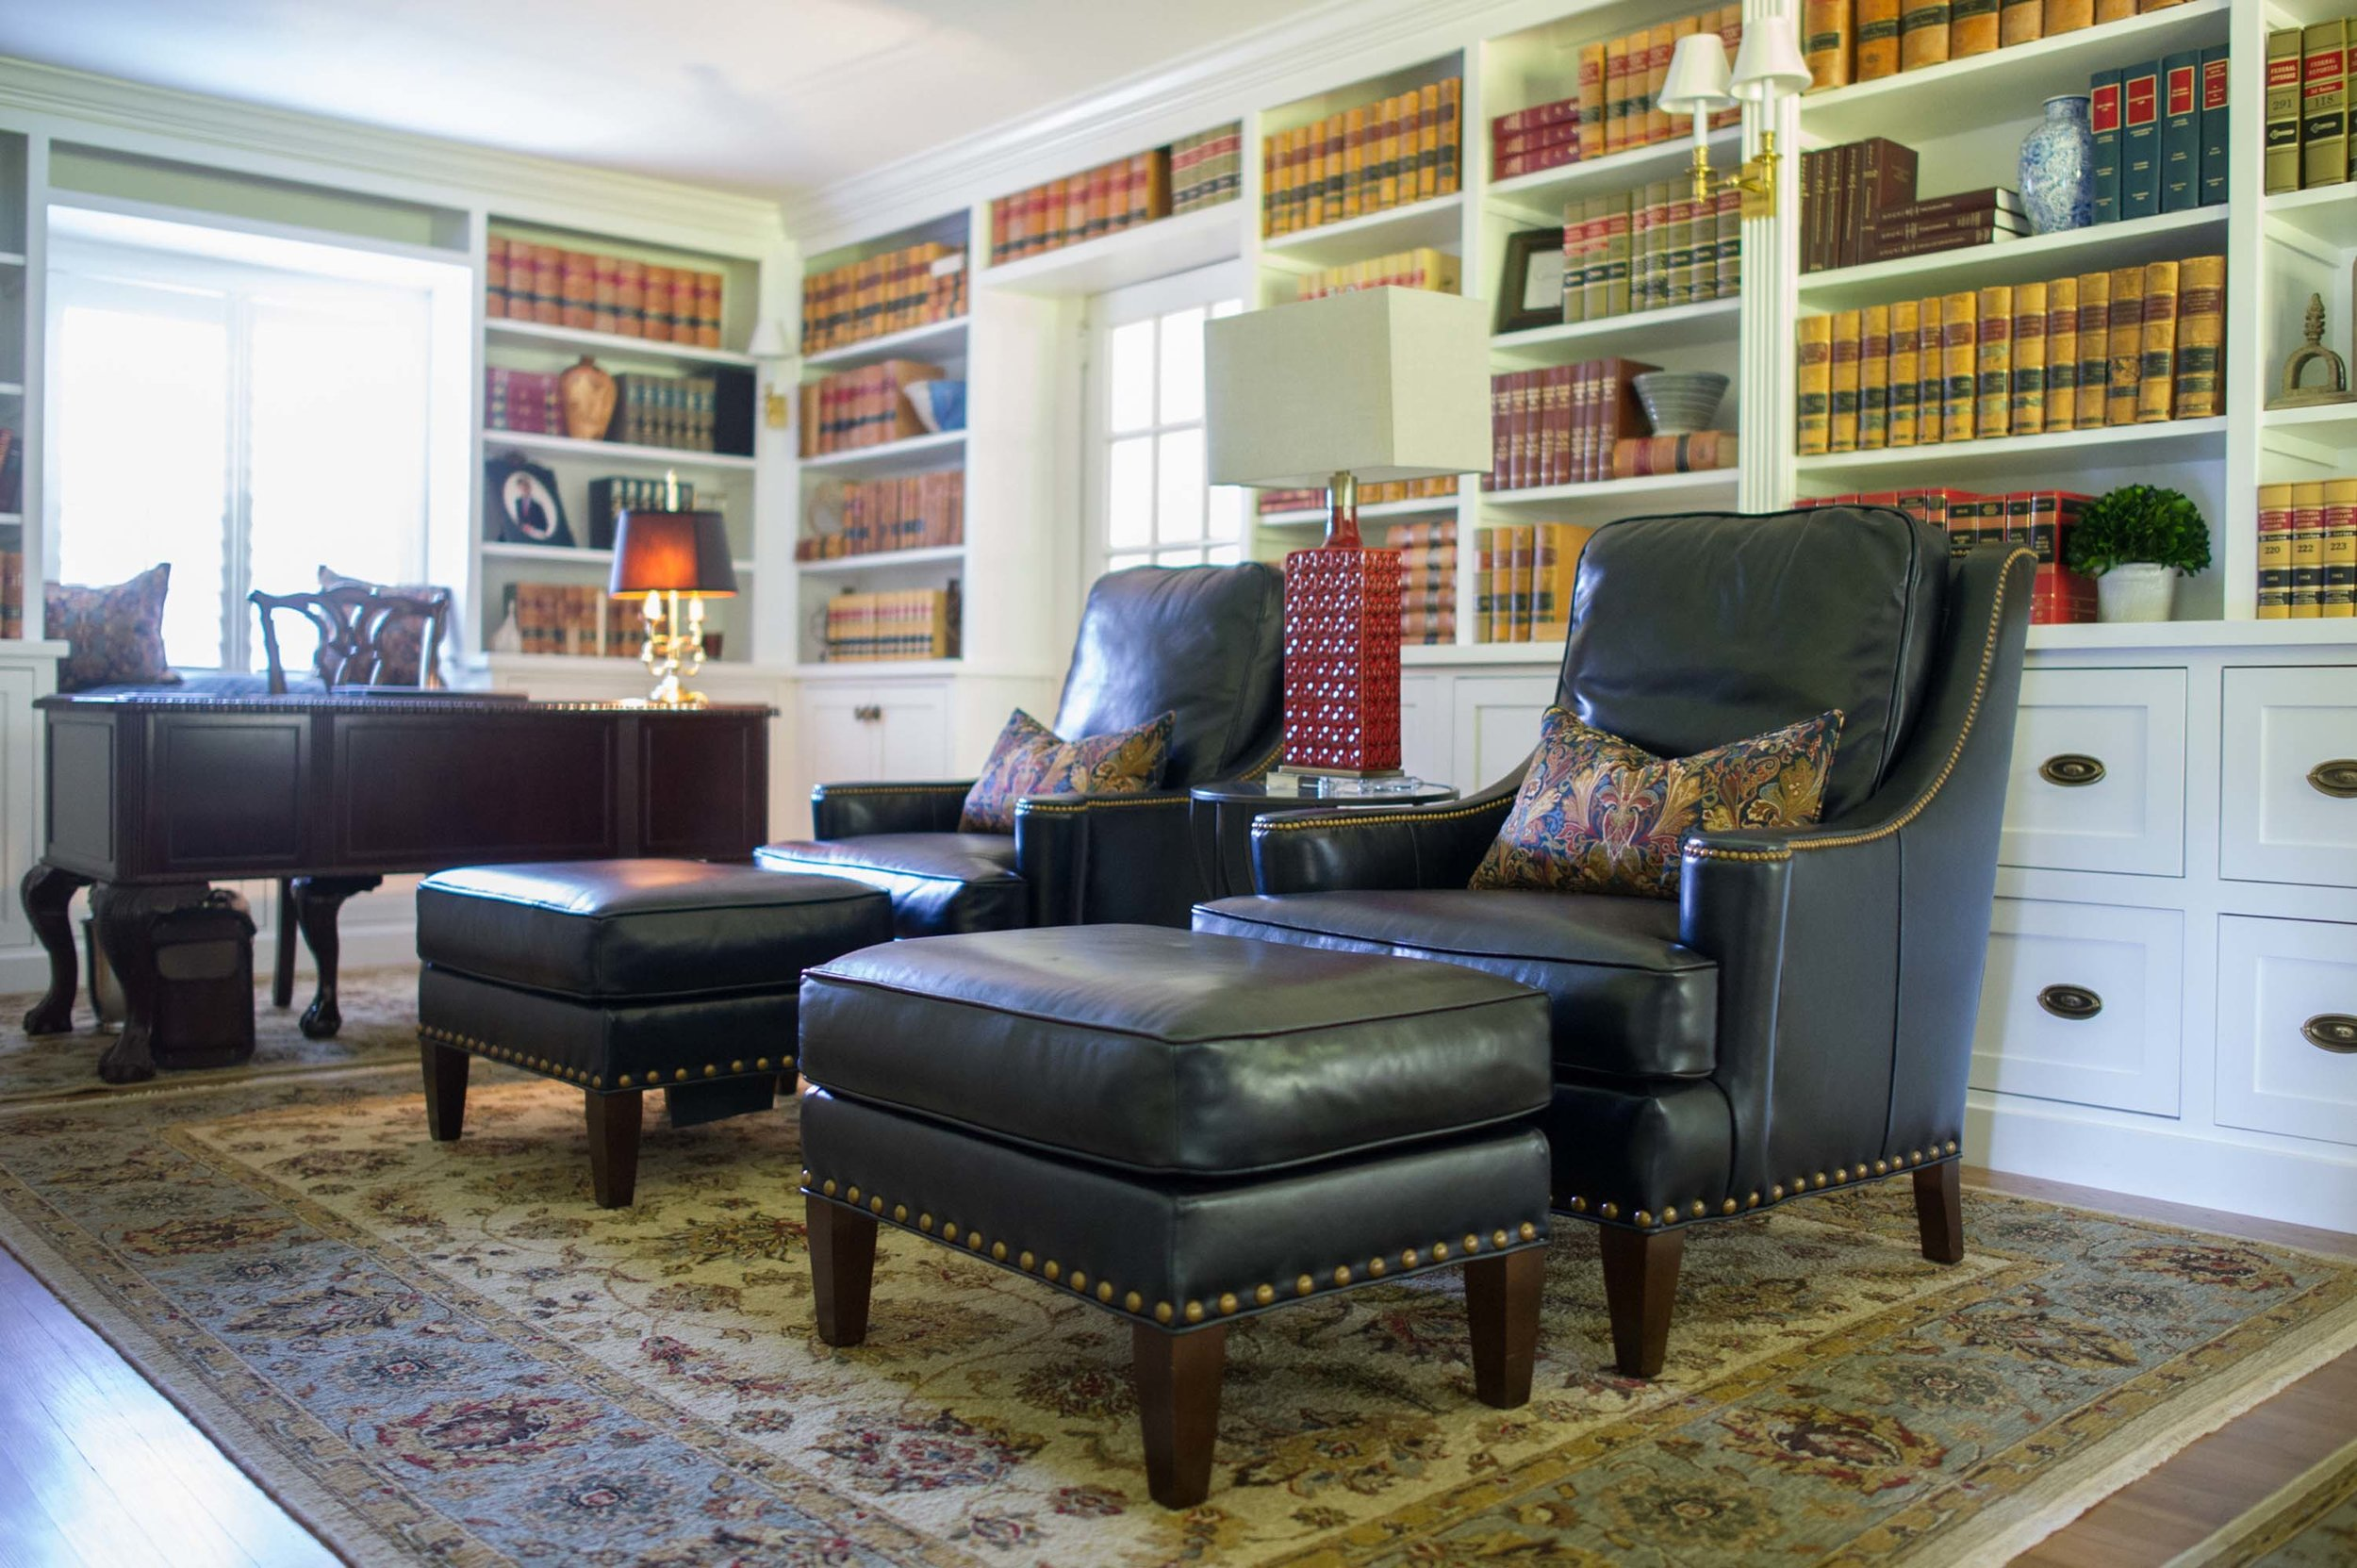 Home library with arm chair, ottoman, large carpet and wooden white shelvesrpet and wooden white shelves